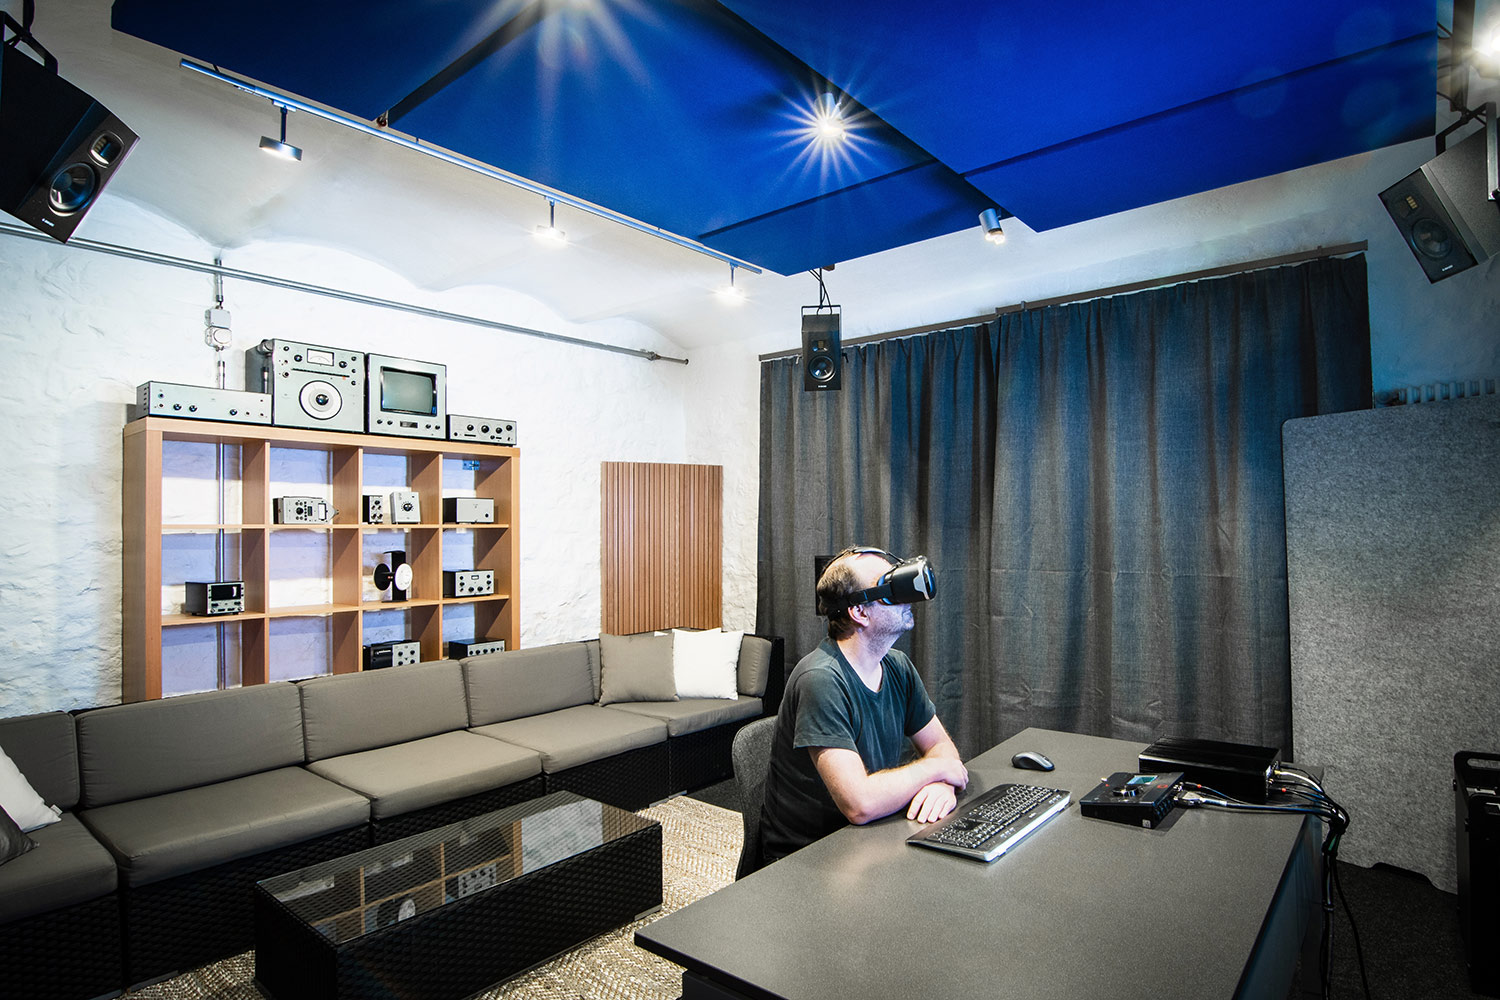 WSDG AcousticLab in Basel, Switzerland. Space designed to accurately demonstrate and reproduce different spaces auralization. Rear View